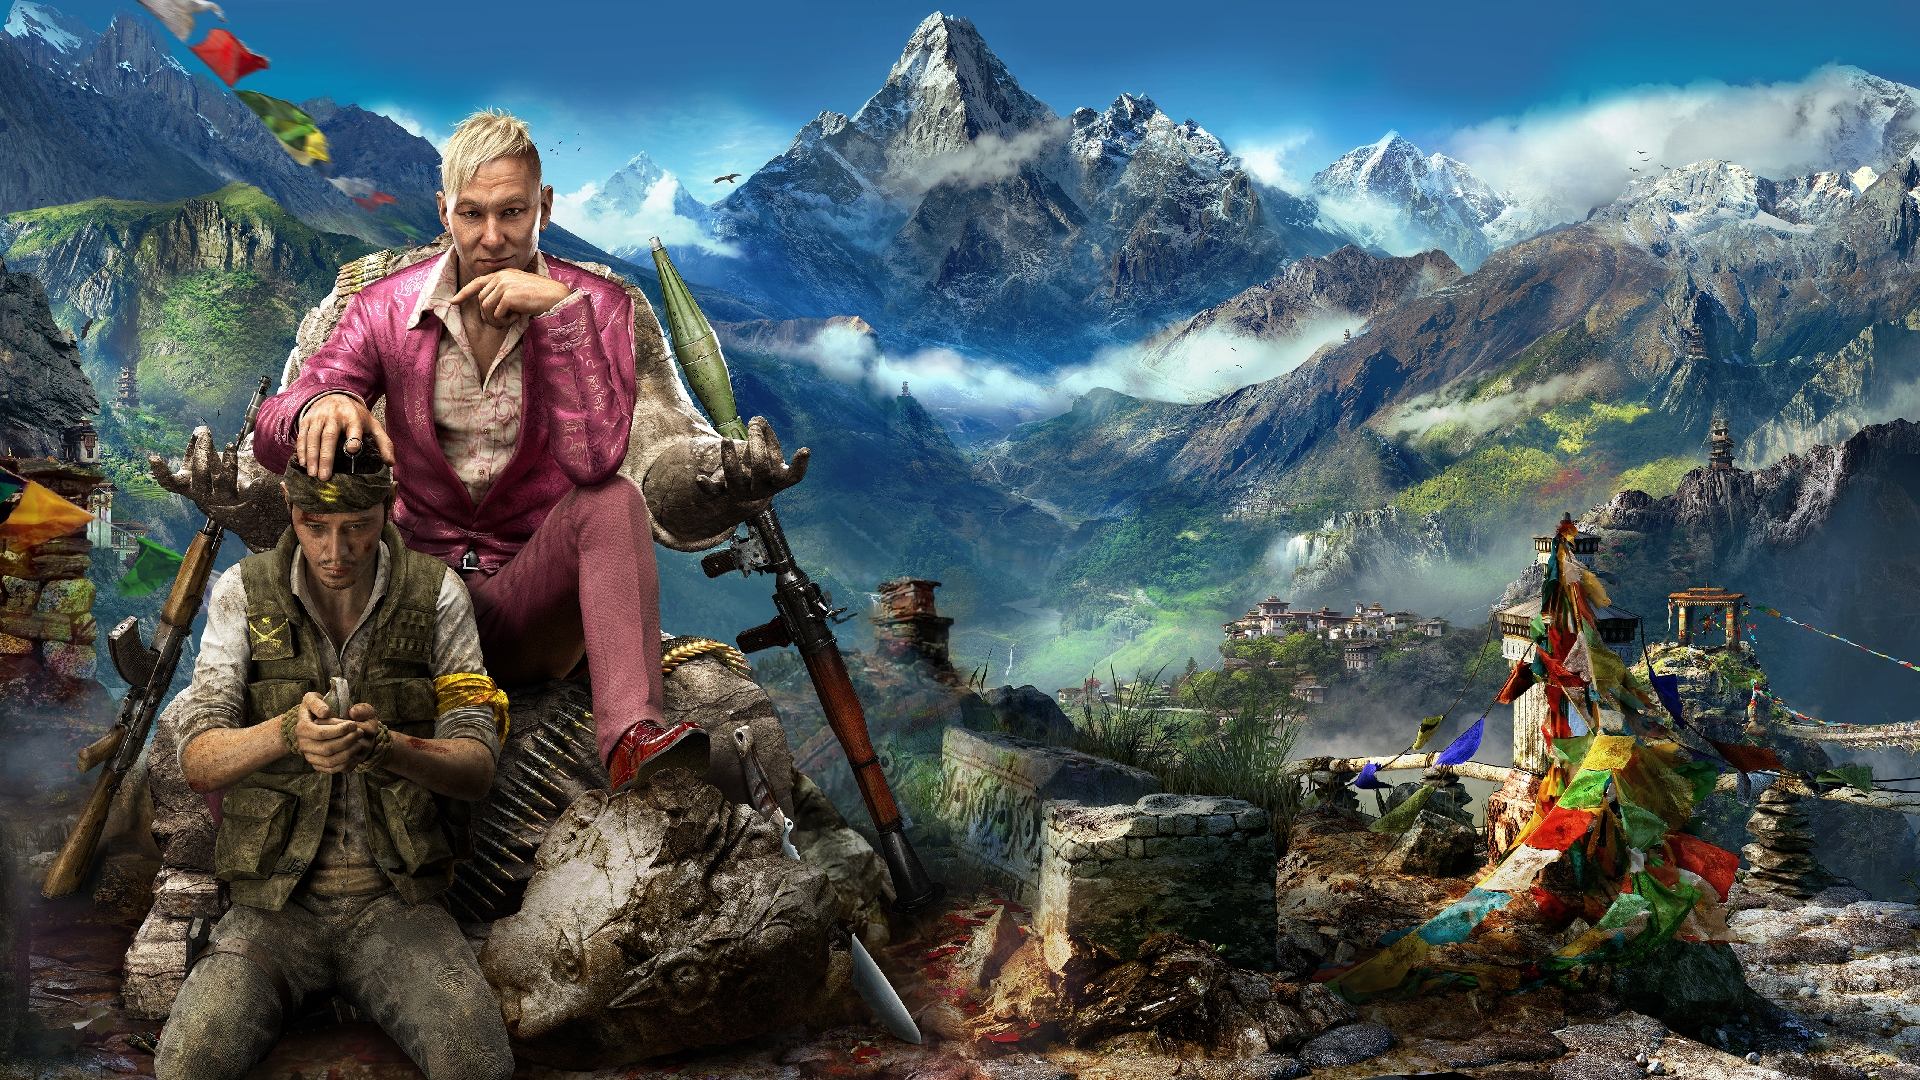 far cry 4 wallpapers, pictures, images